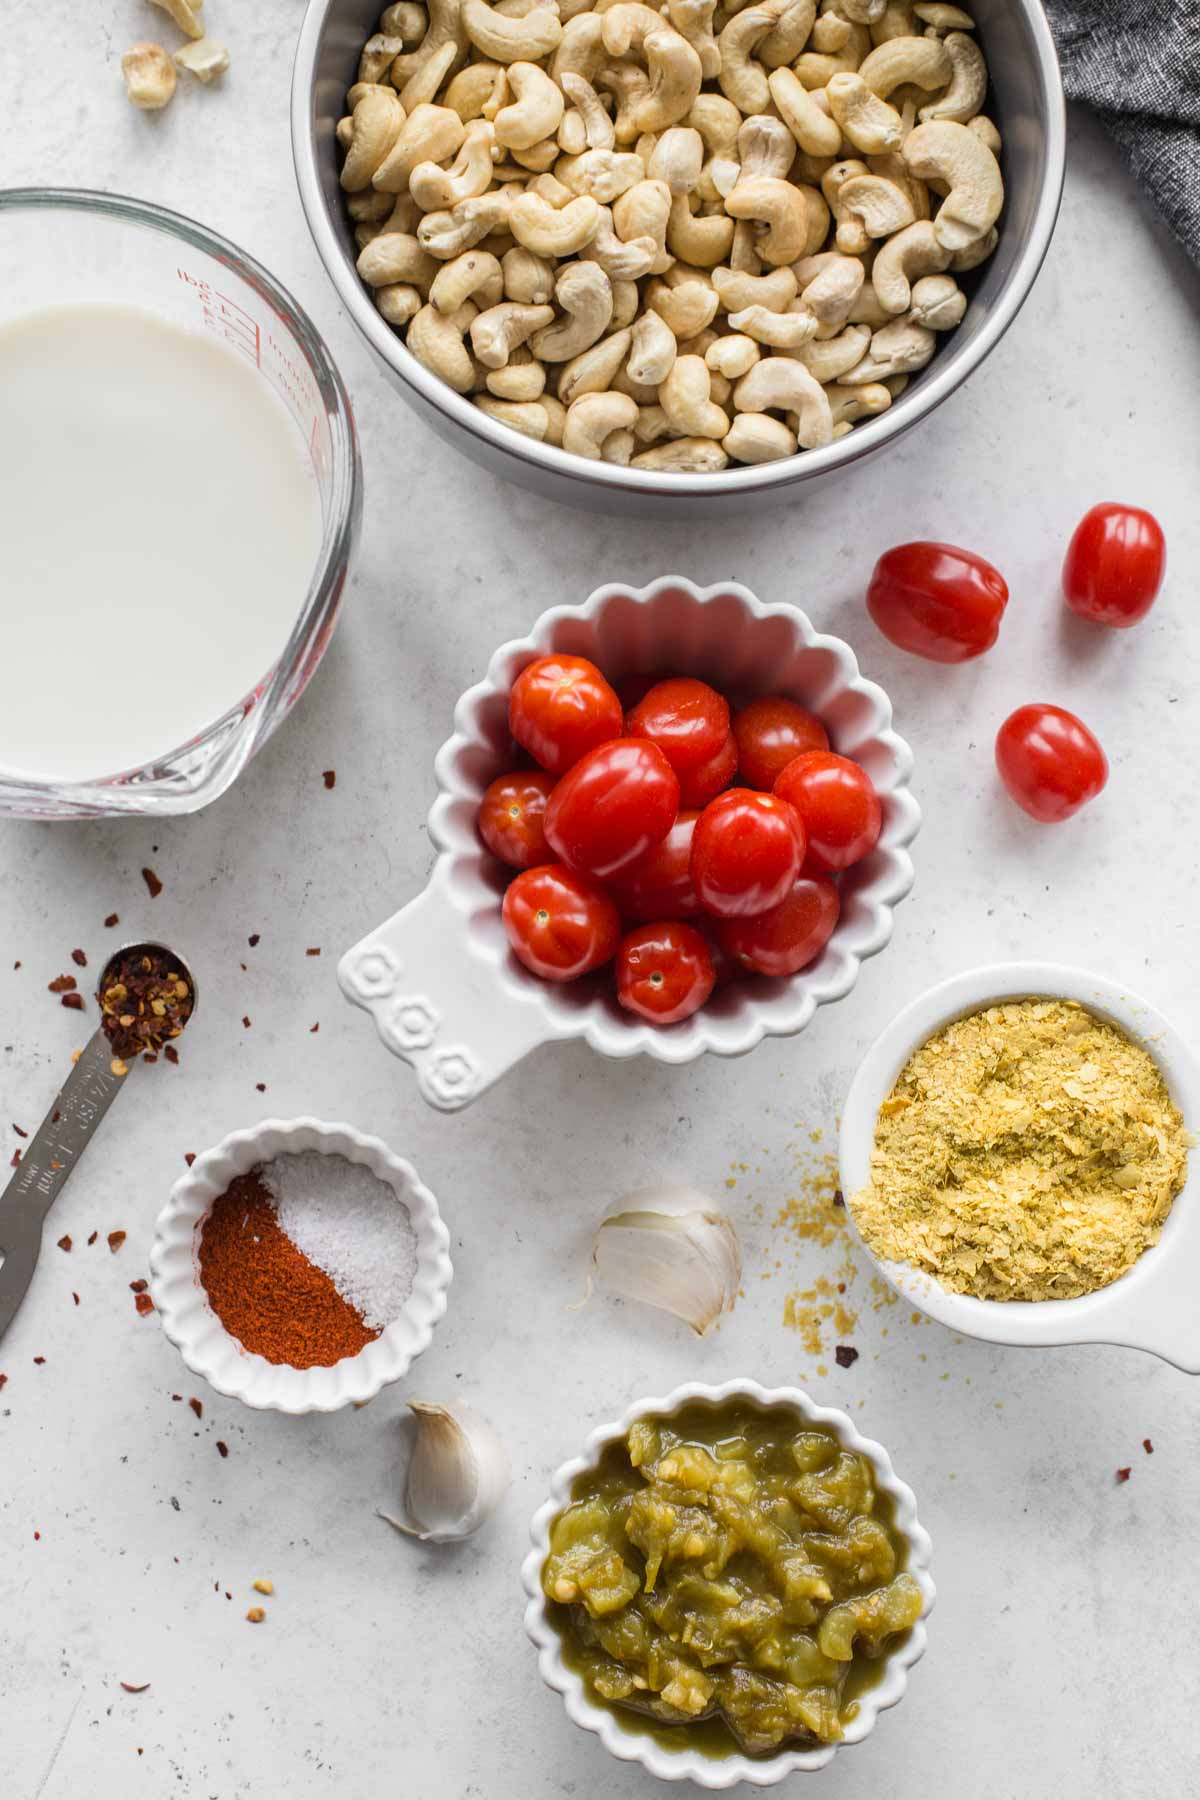 Ingredients to make dairy-free queso arranged individually on a marbled surface.